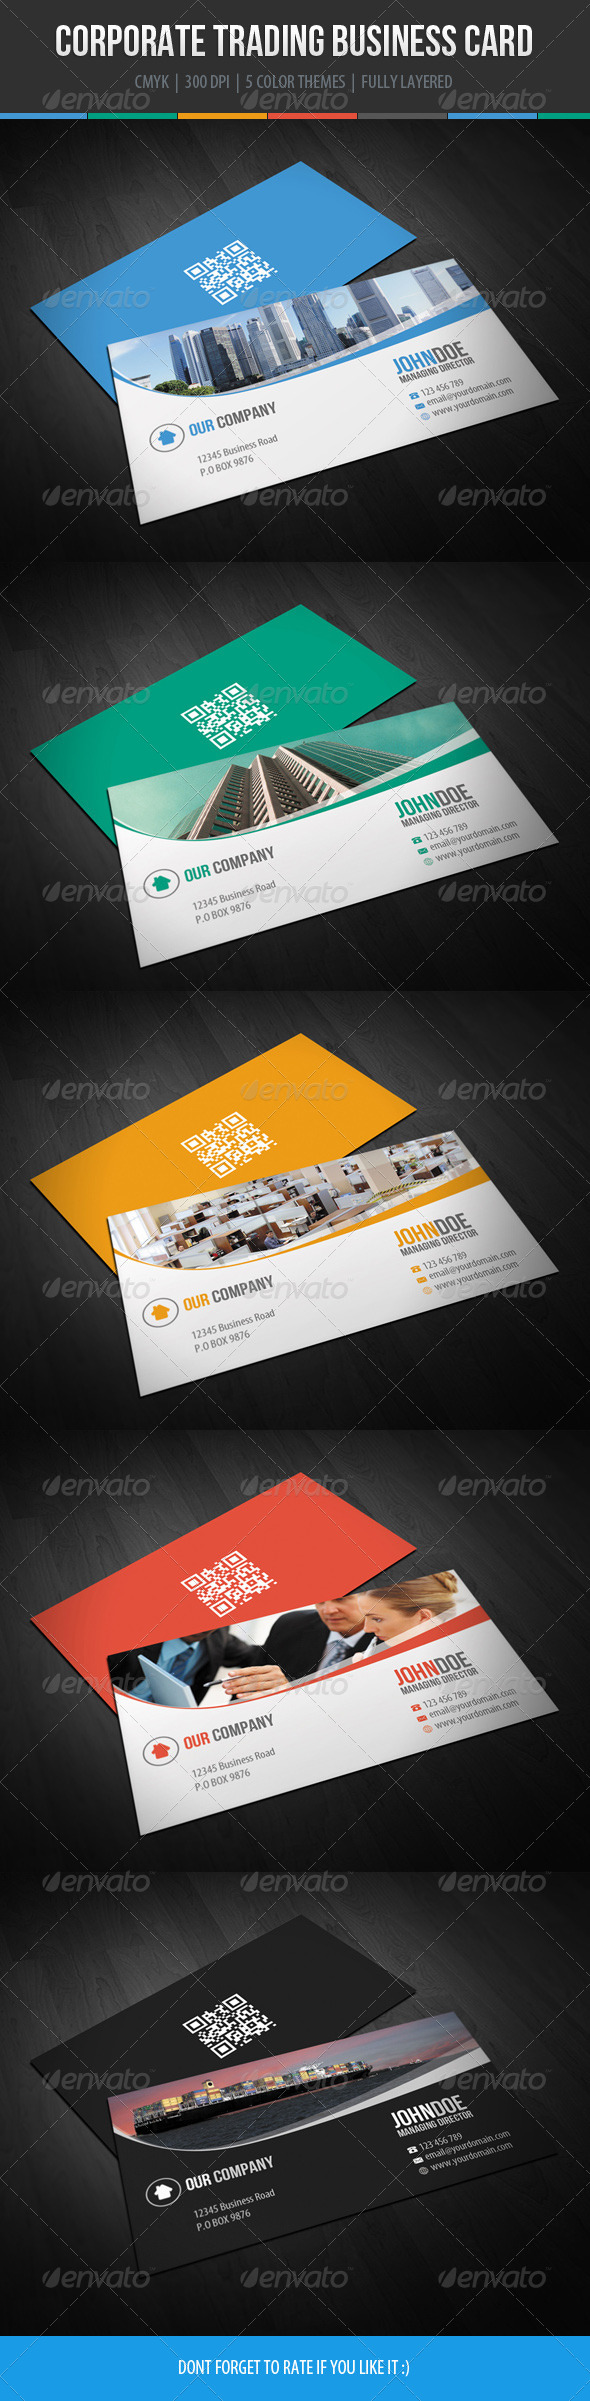 GraphicRiver Corporate Trading Business Card Design 6061878